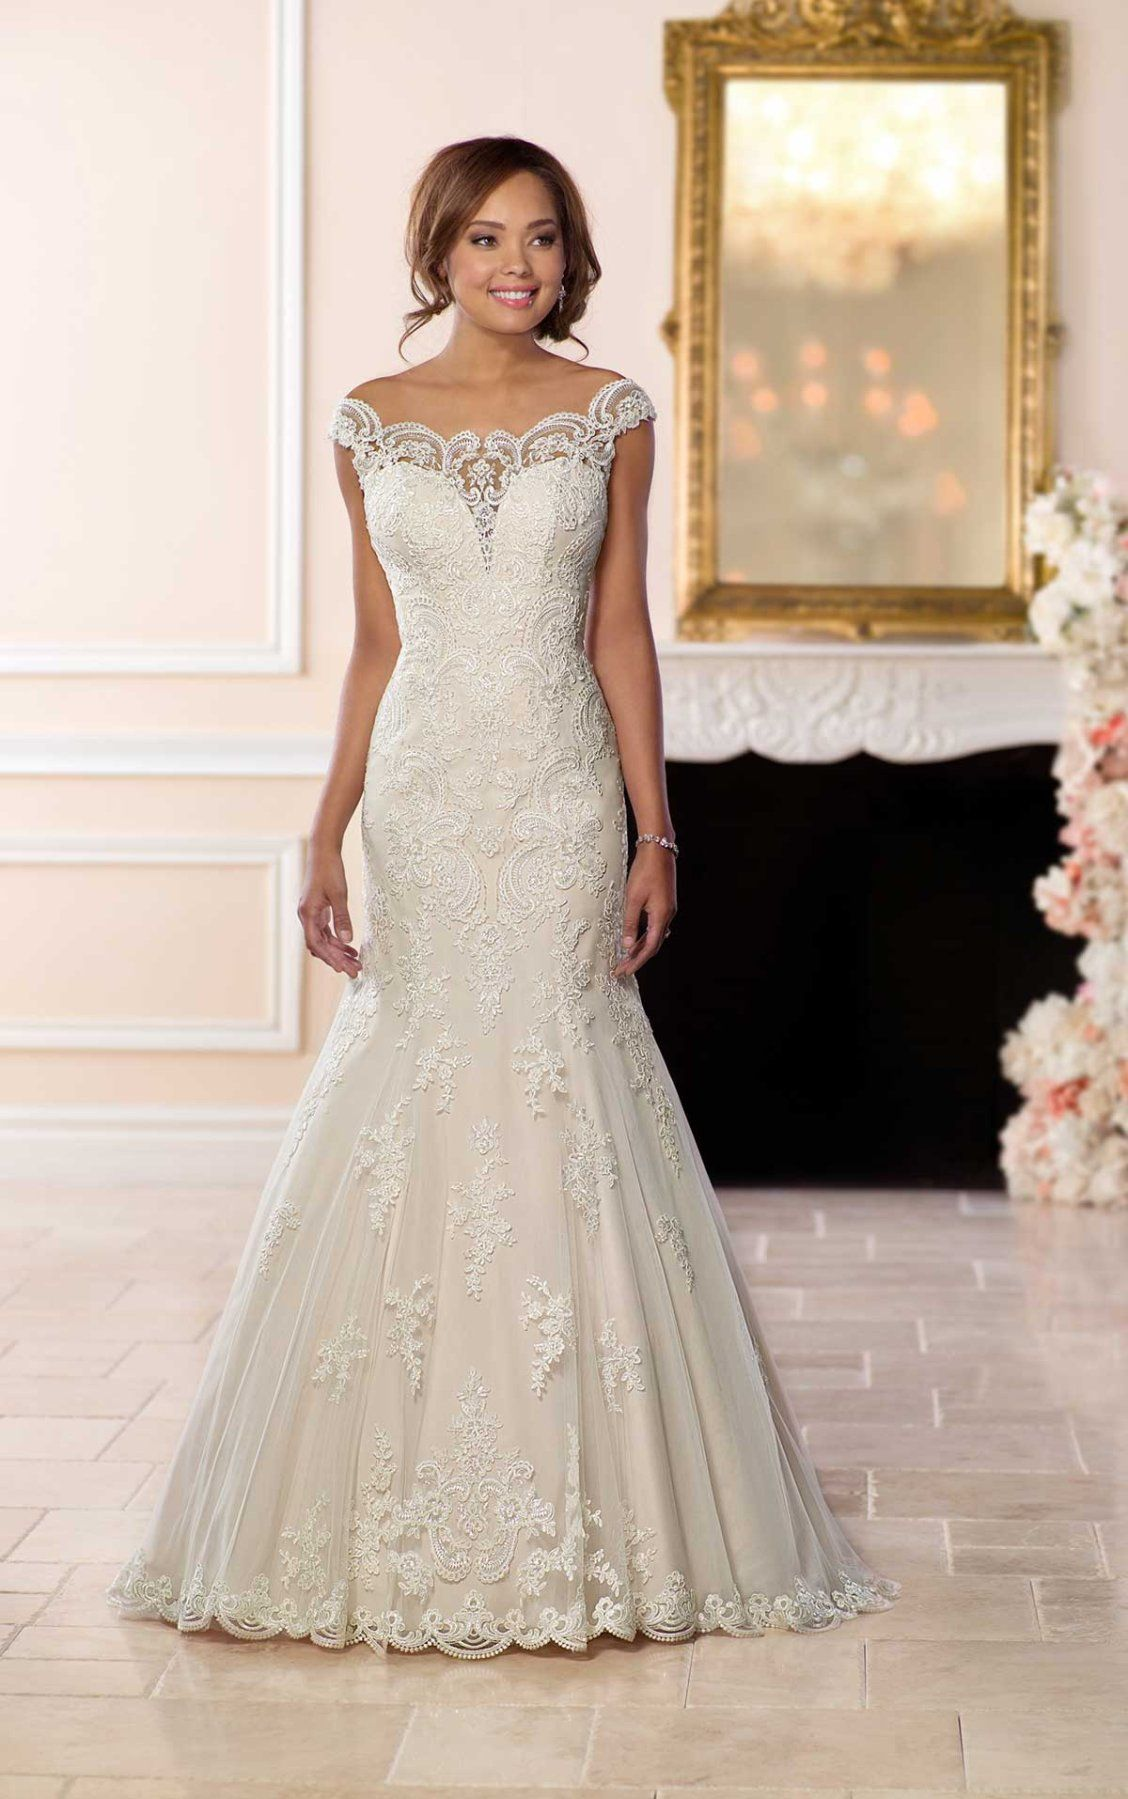 Sheer Lace Offtheshoulder Sleeves Give This Romantic Princessstyle Wedding Dress A Unique Boho Feeling Designer Stella York Has Created: Wedding Dress Sleeves Princess Styles At Reisefeber.org